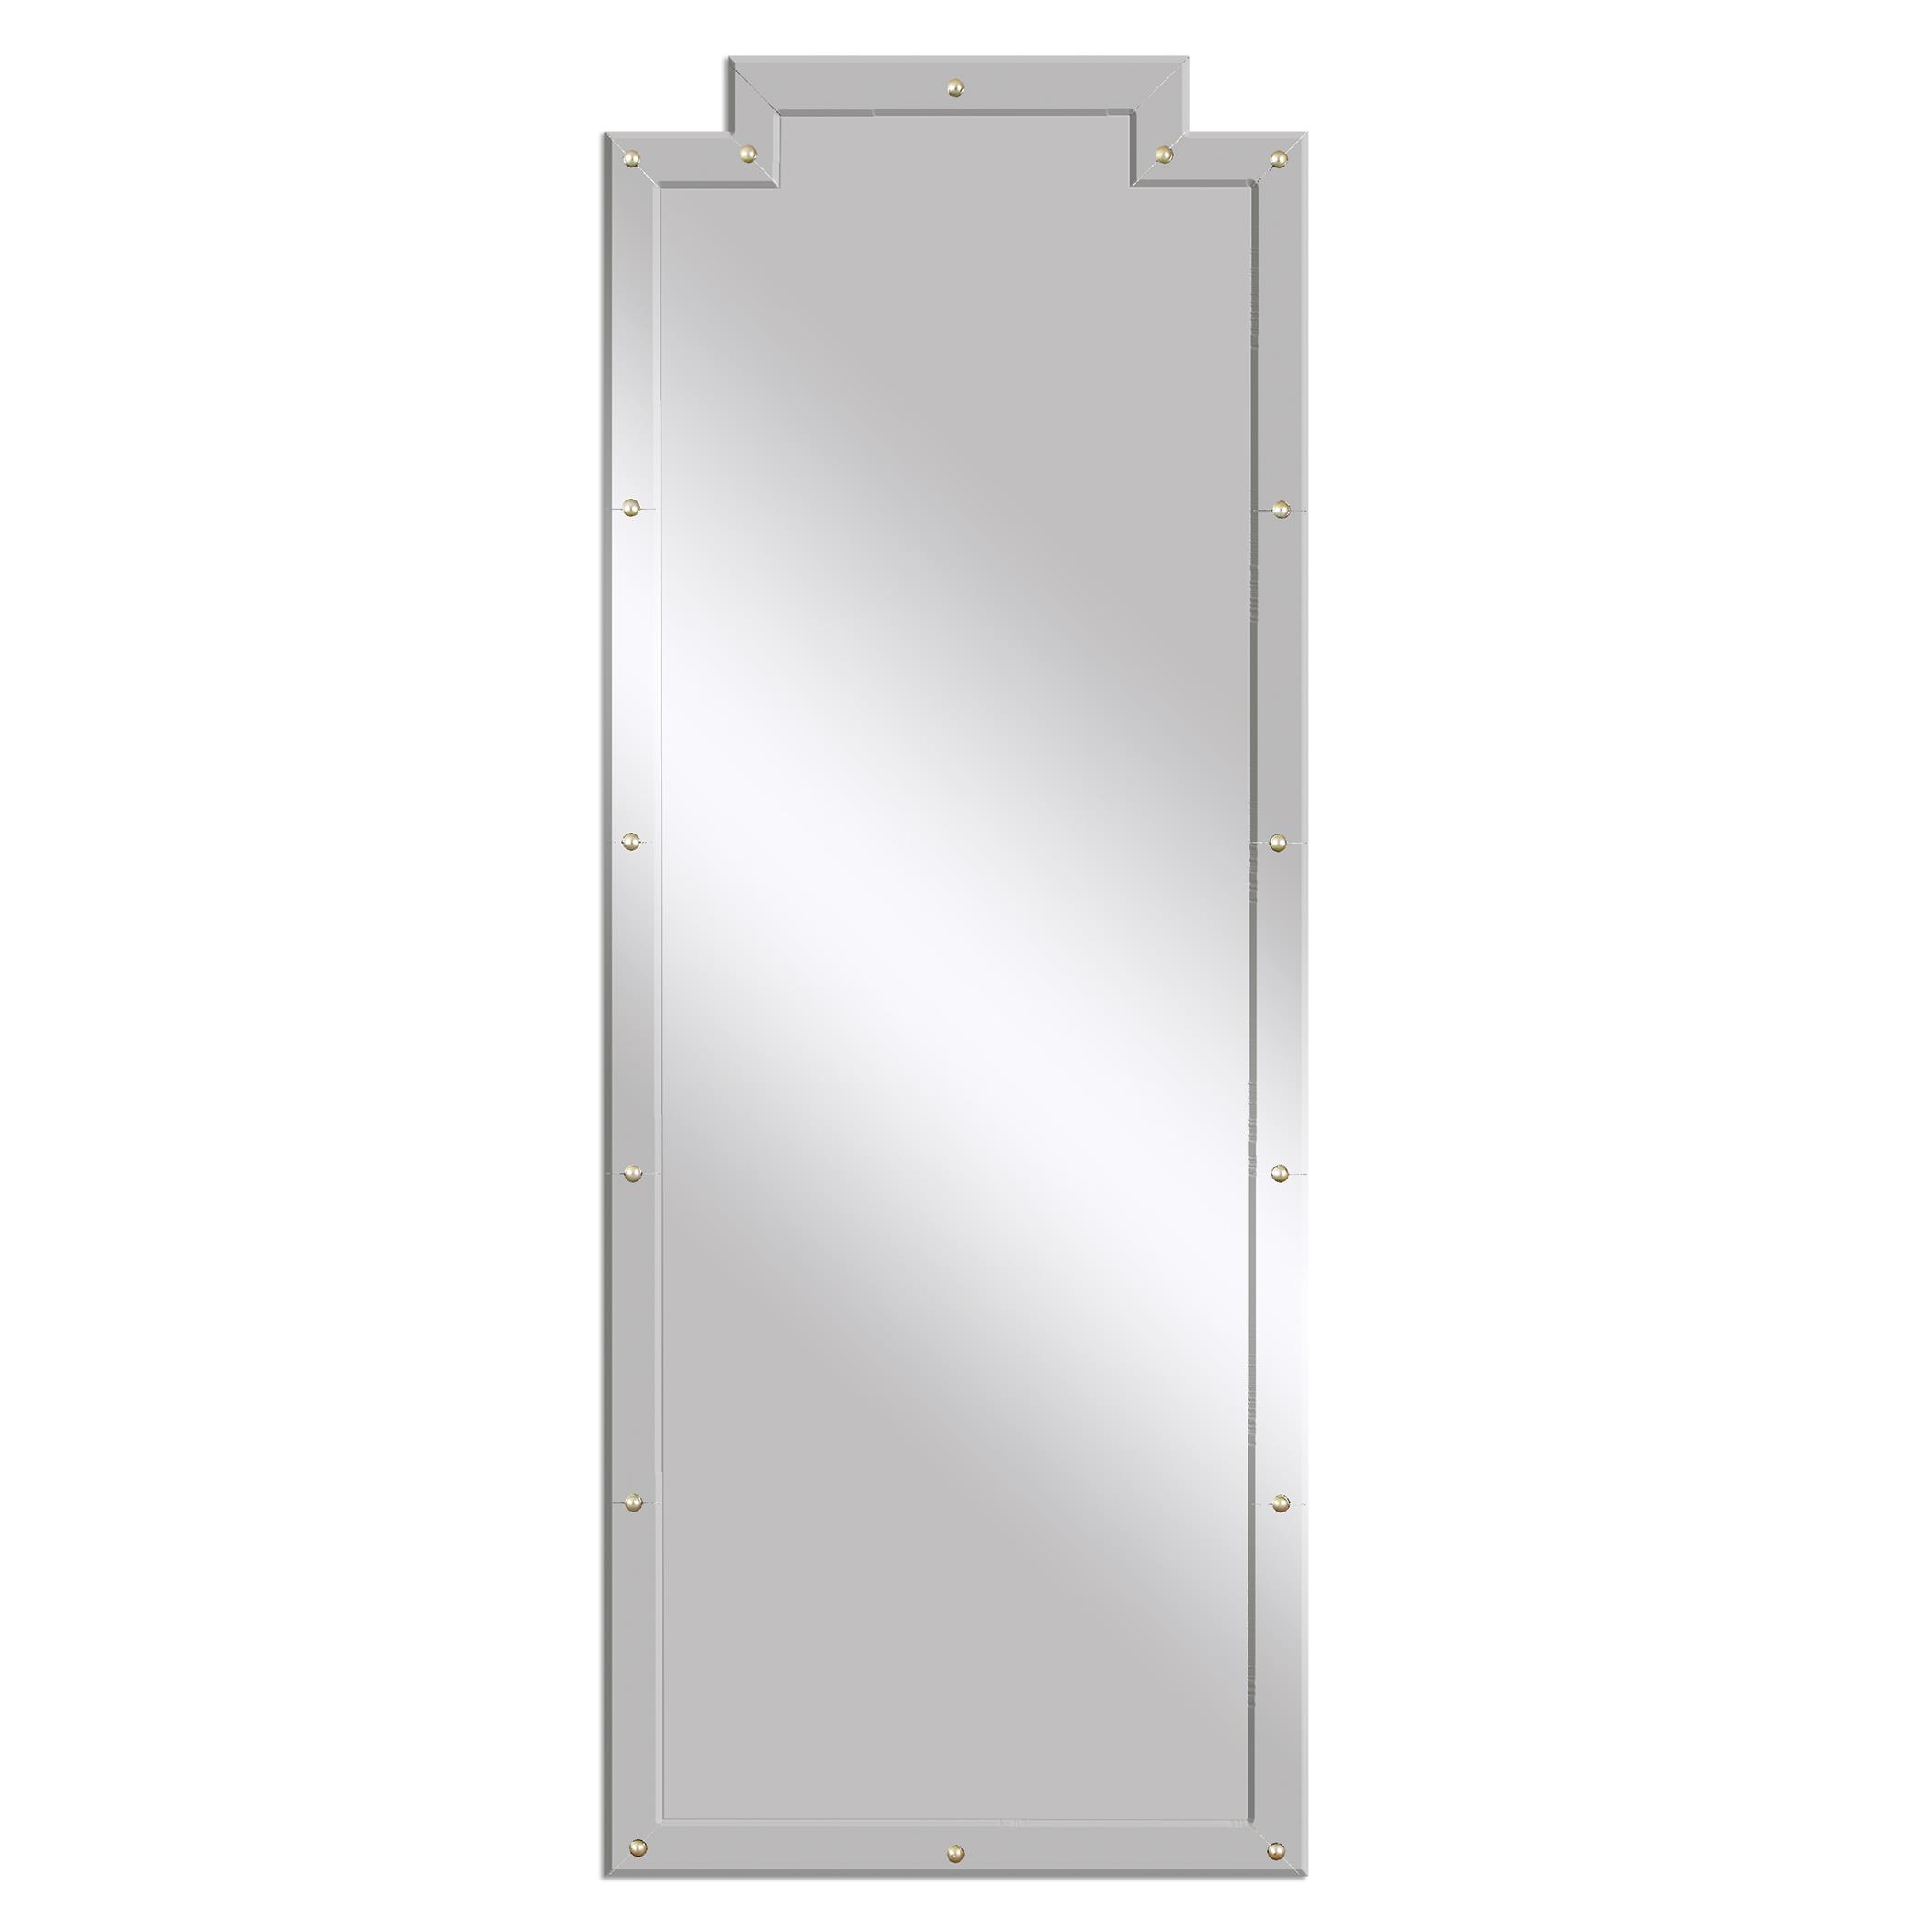 Uttermost Mirrors Vedea Leaner Mirror - Item Number: 08145